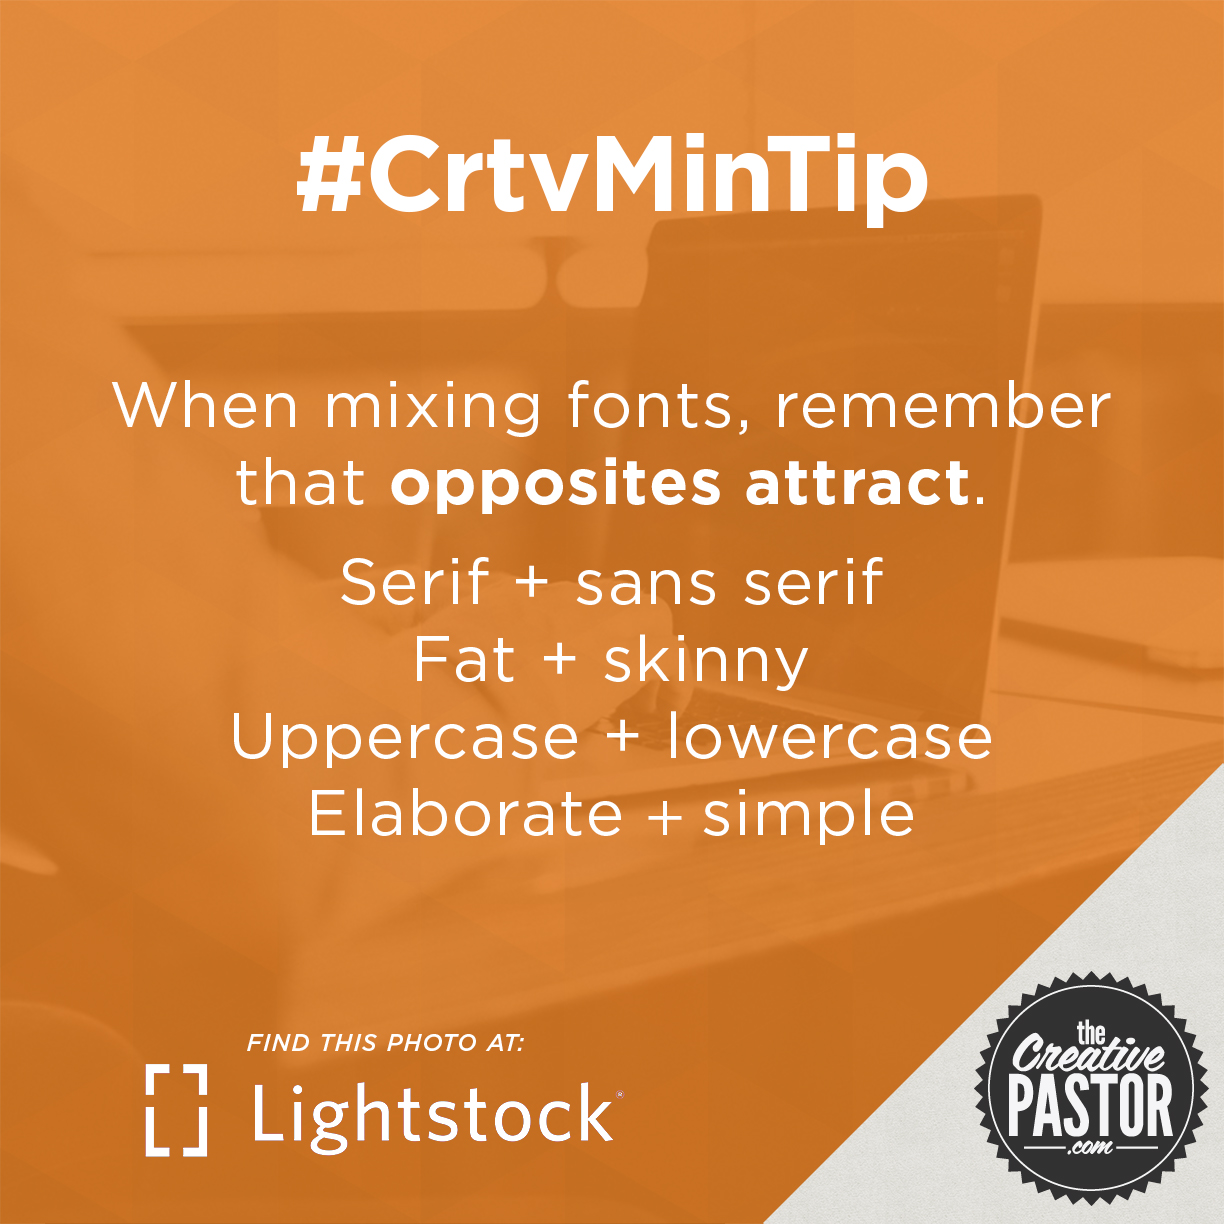 When mixing fonts, remember that opposites attract. Serif + sans serif. Fat + skinny. Uppercase + lowercase. Elaborate + simple.